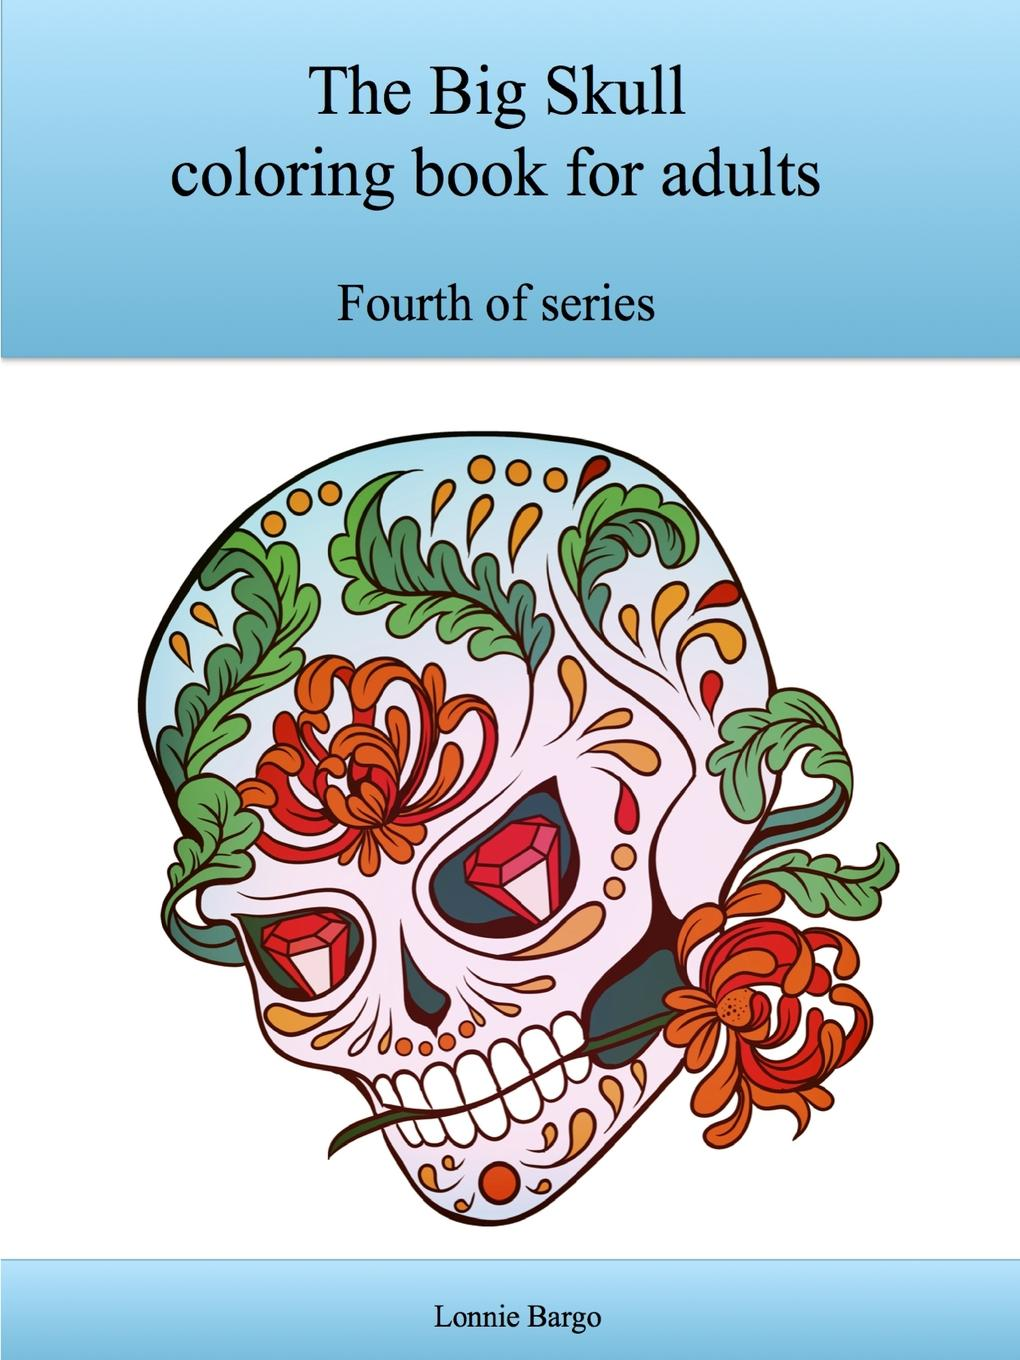 Lonnie Bargo The Fourth Big Skull coloring book for adults jasmine taylor flower coloring an inspirational coloring book for adults